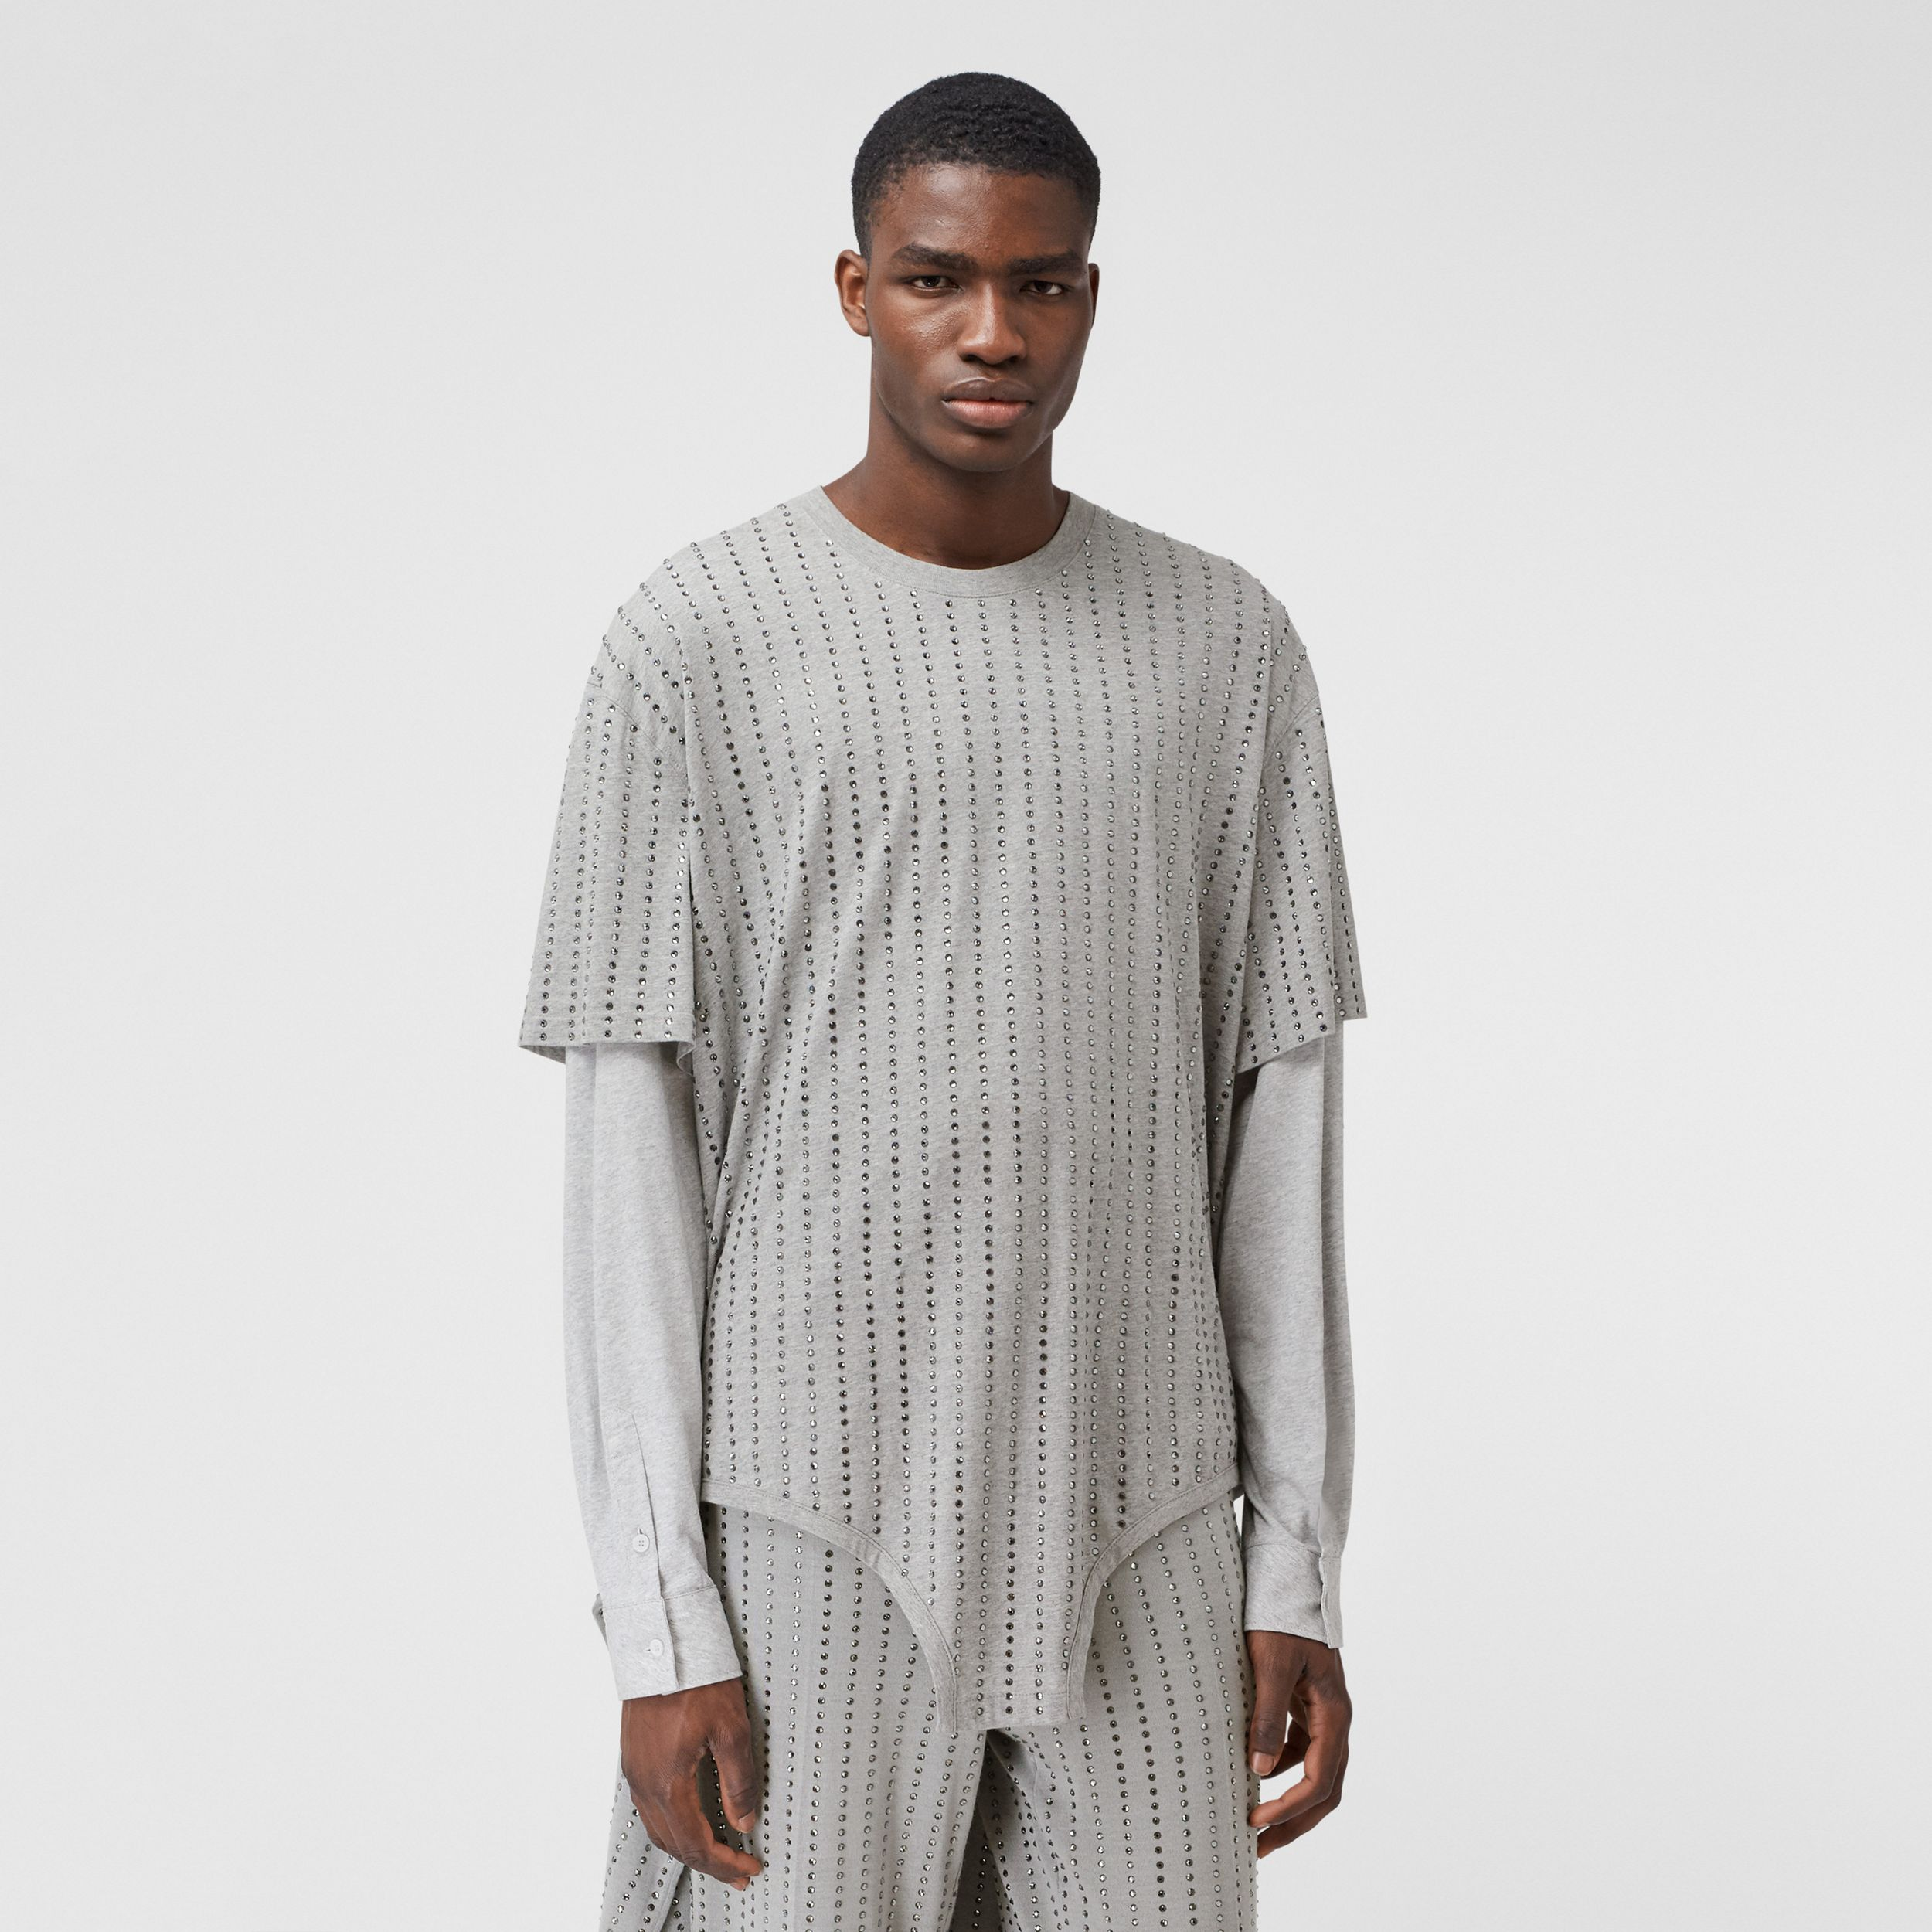 Cut-out Hem Crystal Pinstriped Cotton Oversized T-shirt in Cloud Grey - Men | Burberry - 1